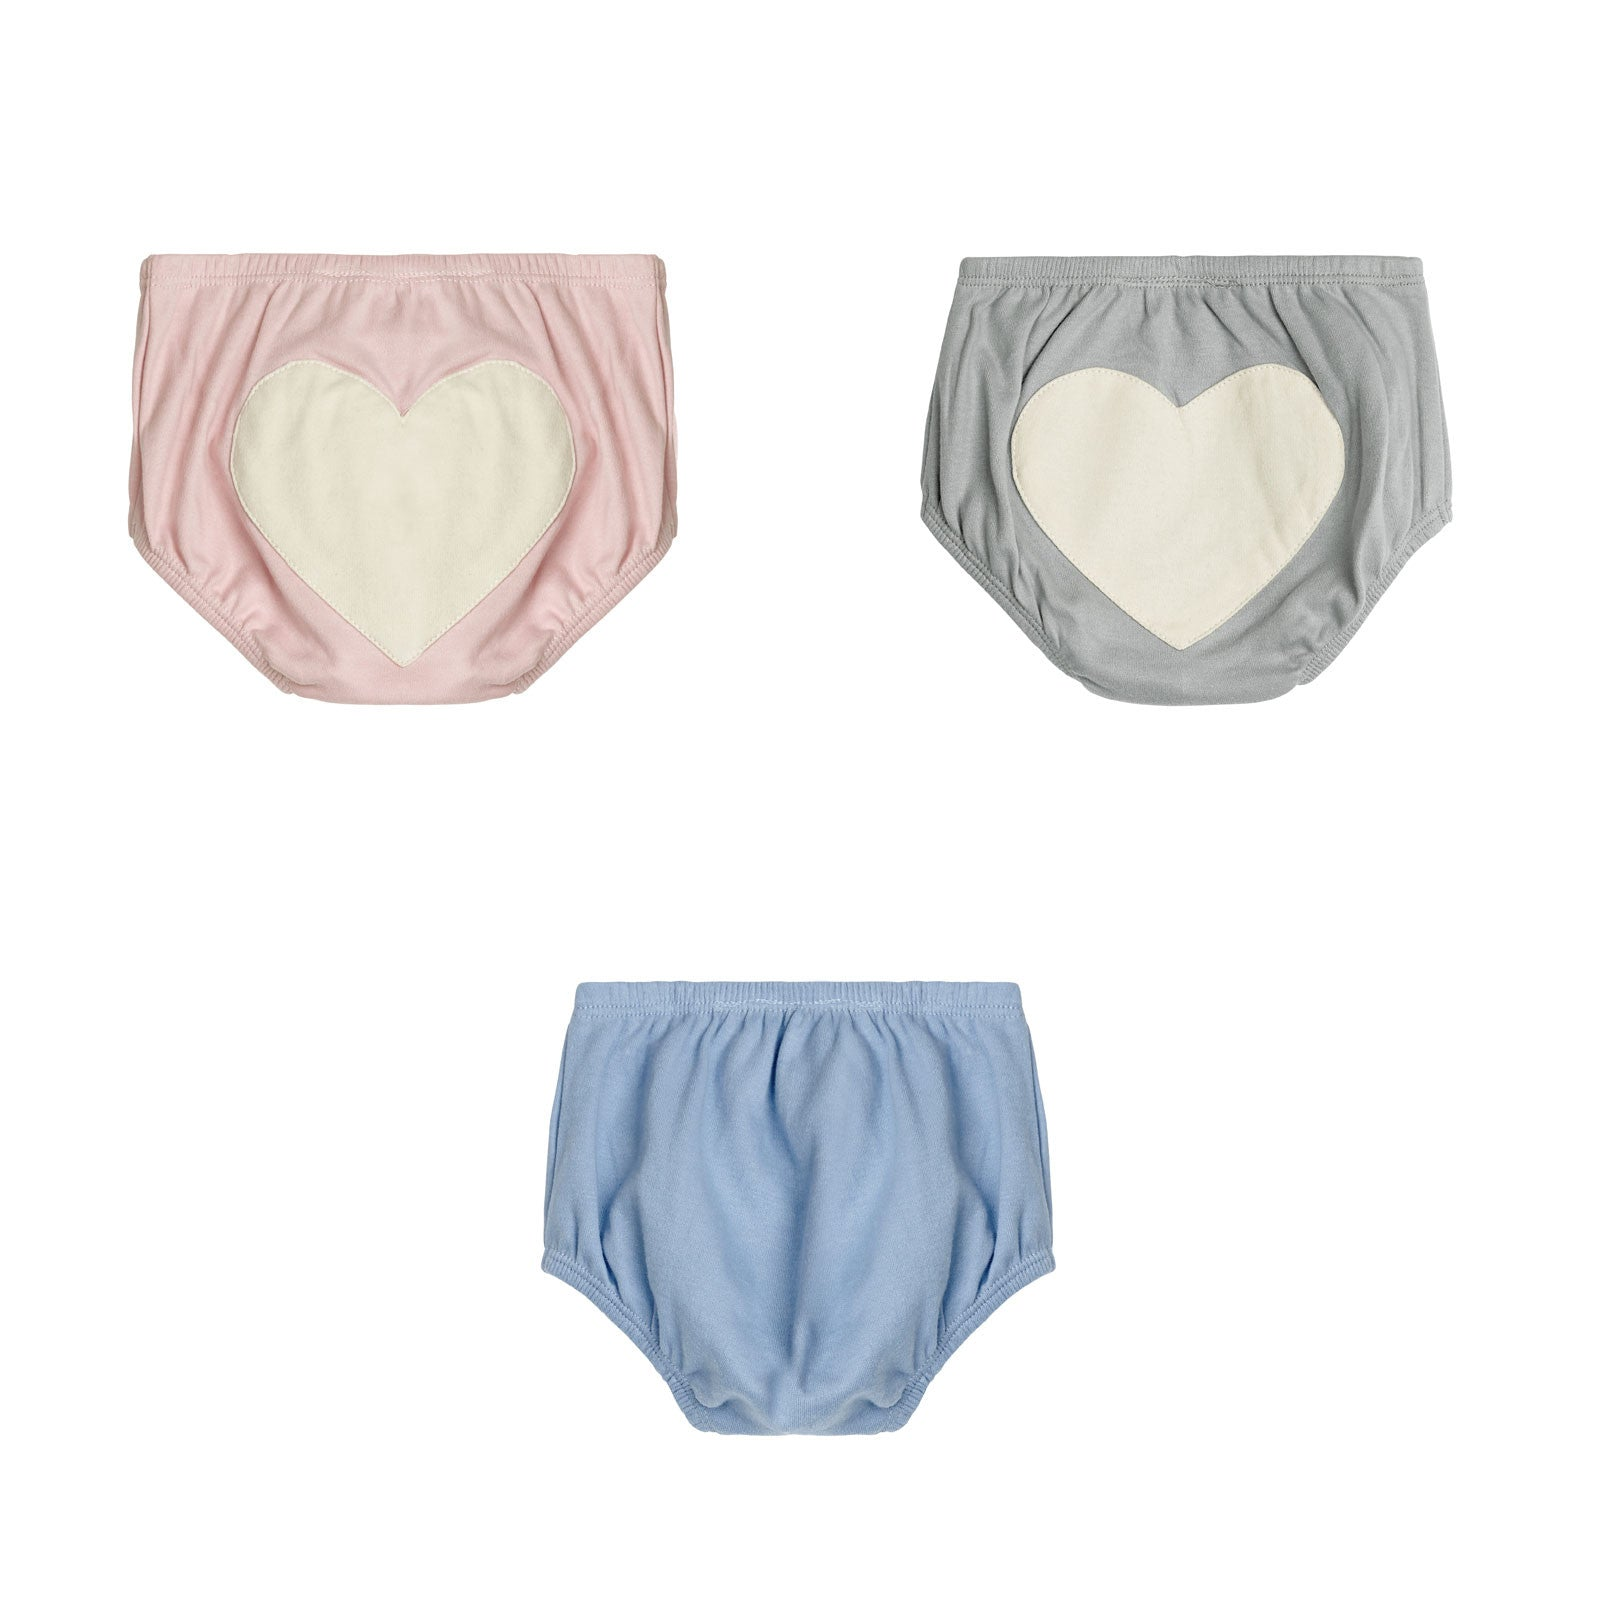 Sapling Child Essentials Heart Bloomers Sapling Child Baby & Toddler Clothing at Little Earth Nest Eco Shop